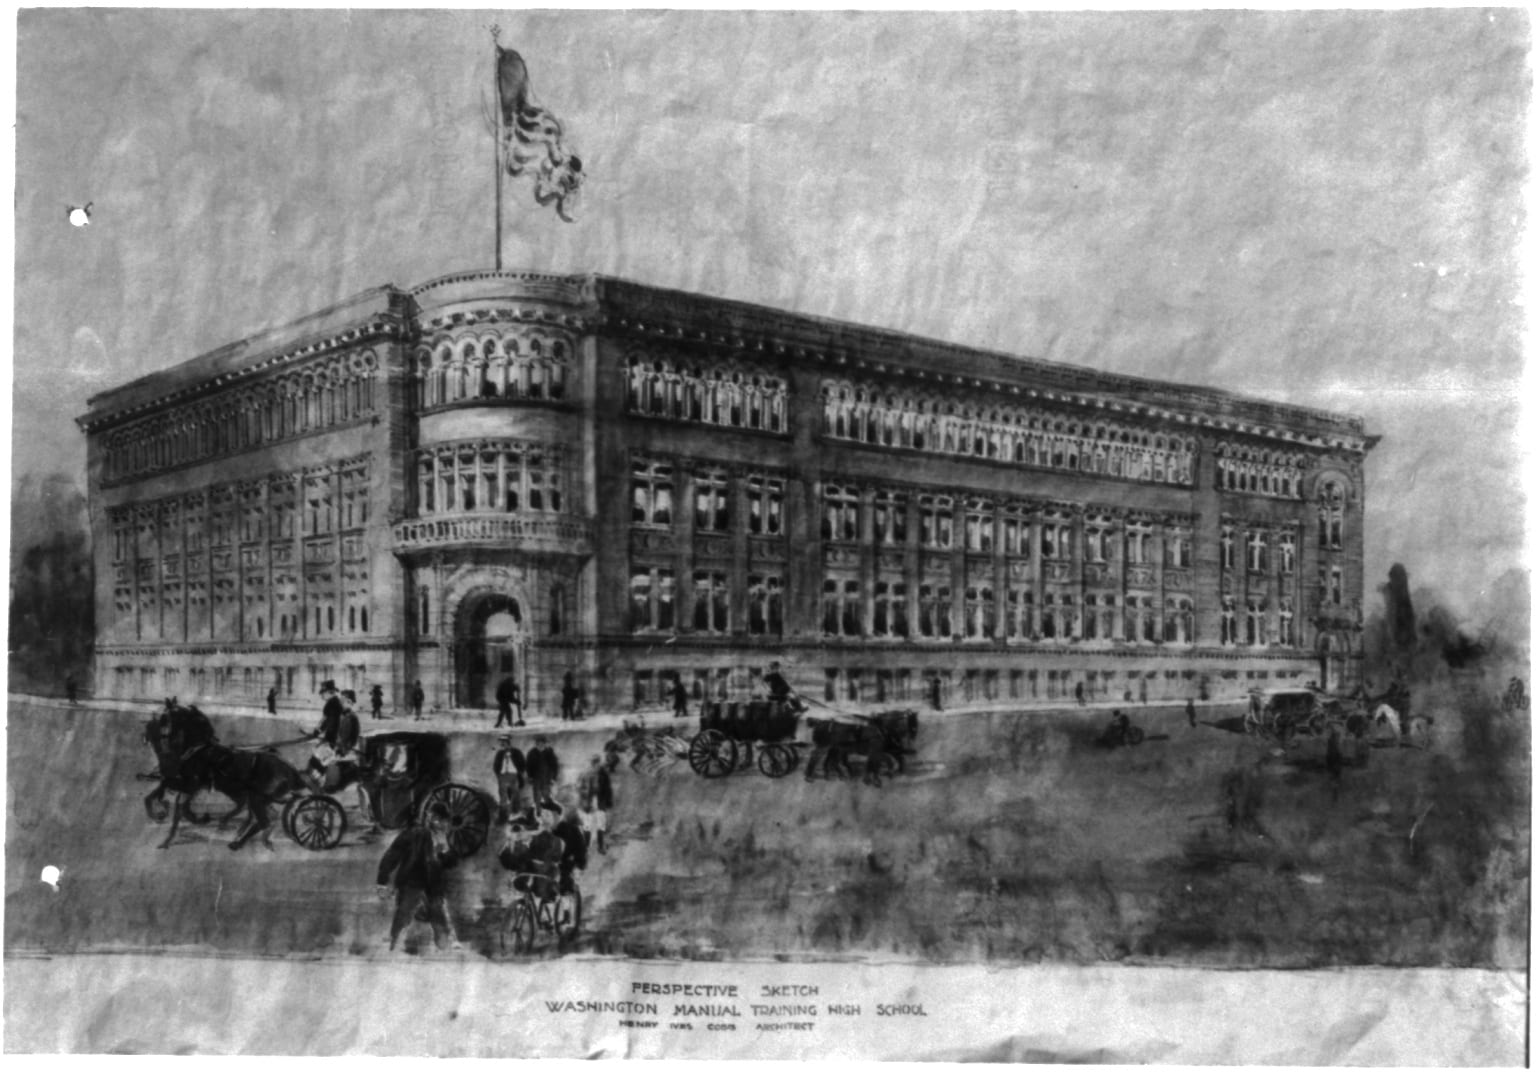 Perspective sketch - Washington Manual Training High School, Henry Ives Cobb, Architect (1895-1898)